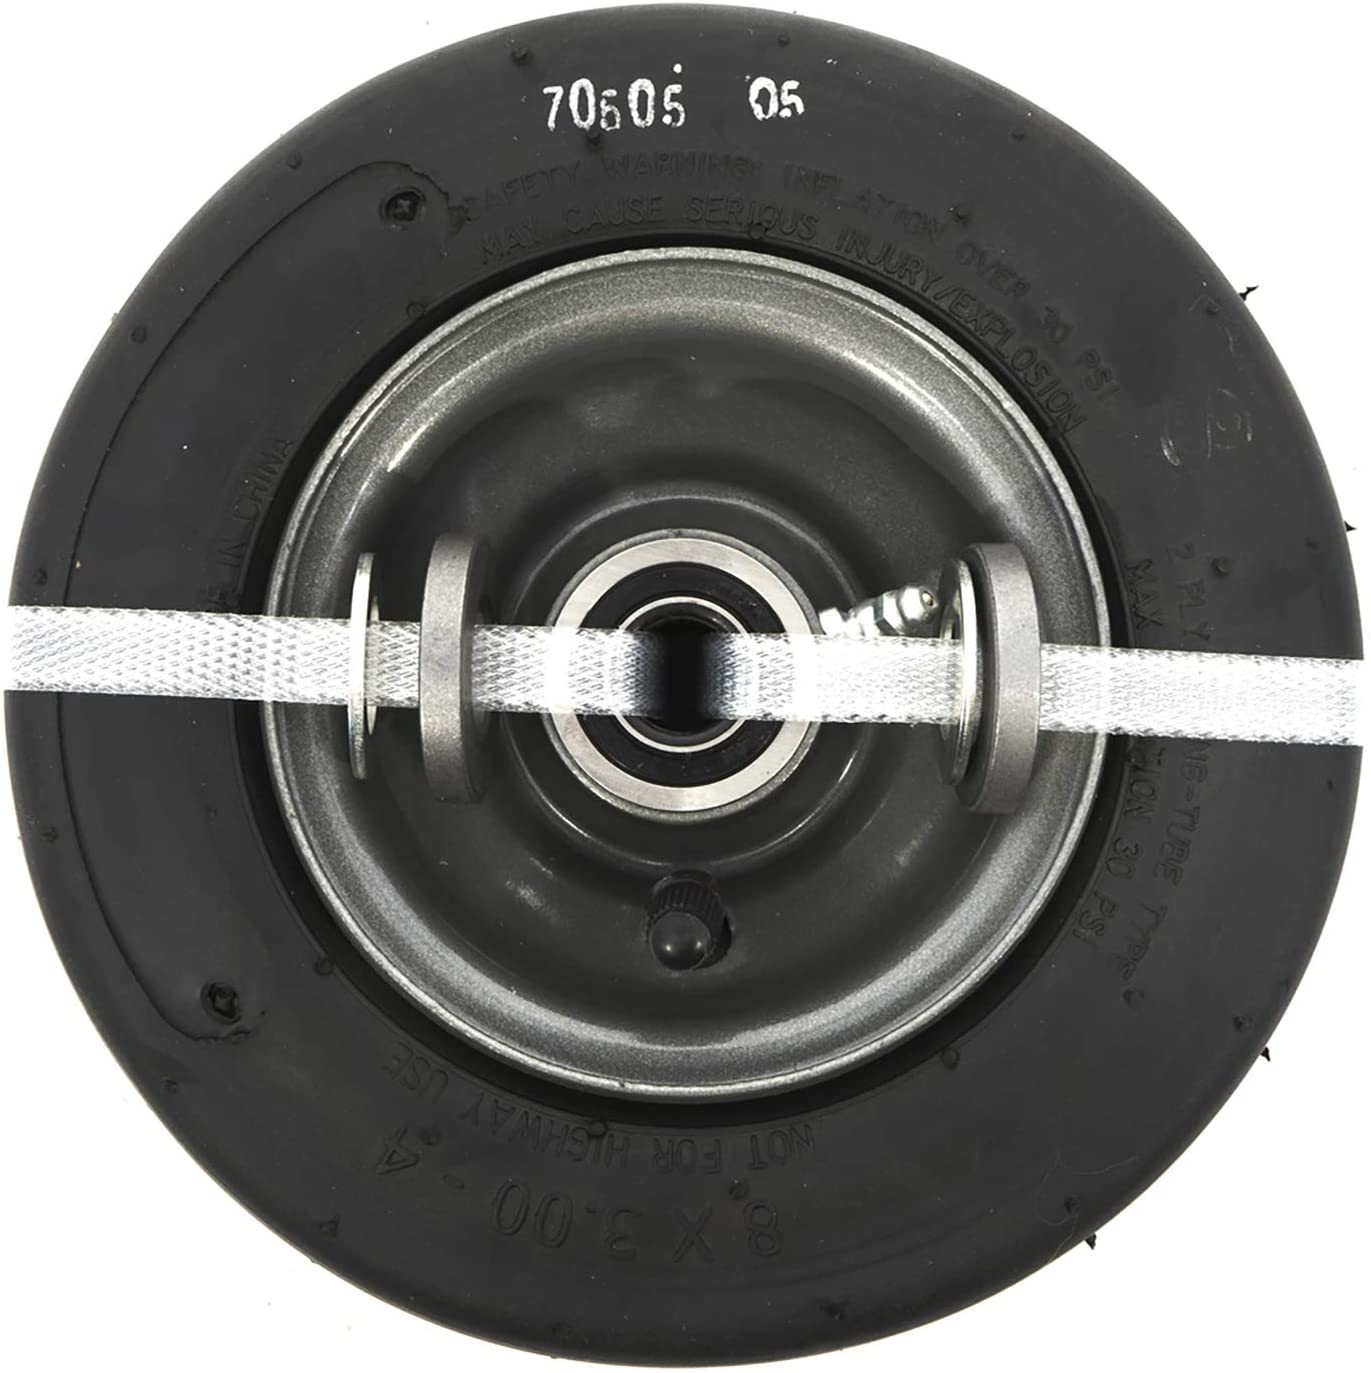 SureFit Front Pneumatic Mower Wheel Assembly Smooth Tread for Universal Zero-Turn Mowers 8x3-4